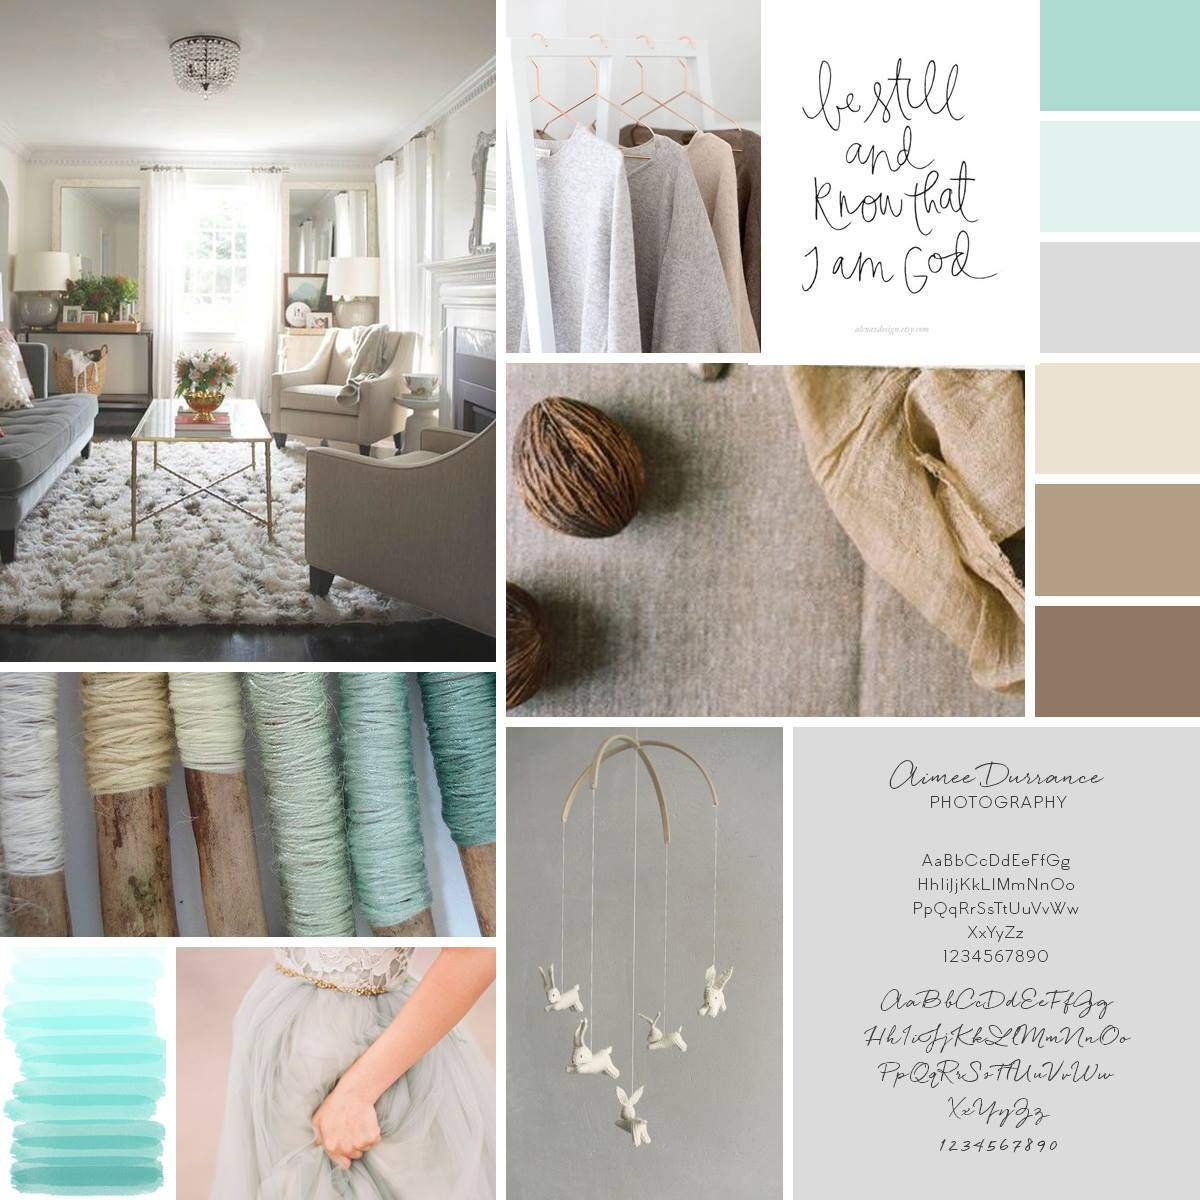 Aimee Durrance Photography lifestyle branding board for maternity, birth, fresh 48, newborn, and family photography in Leesburg, VA Northern Virginia